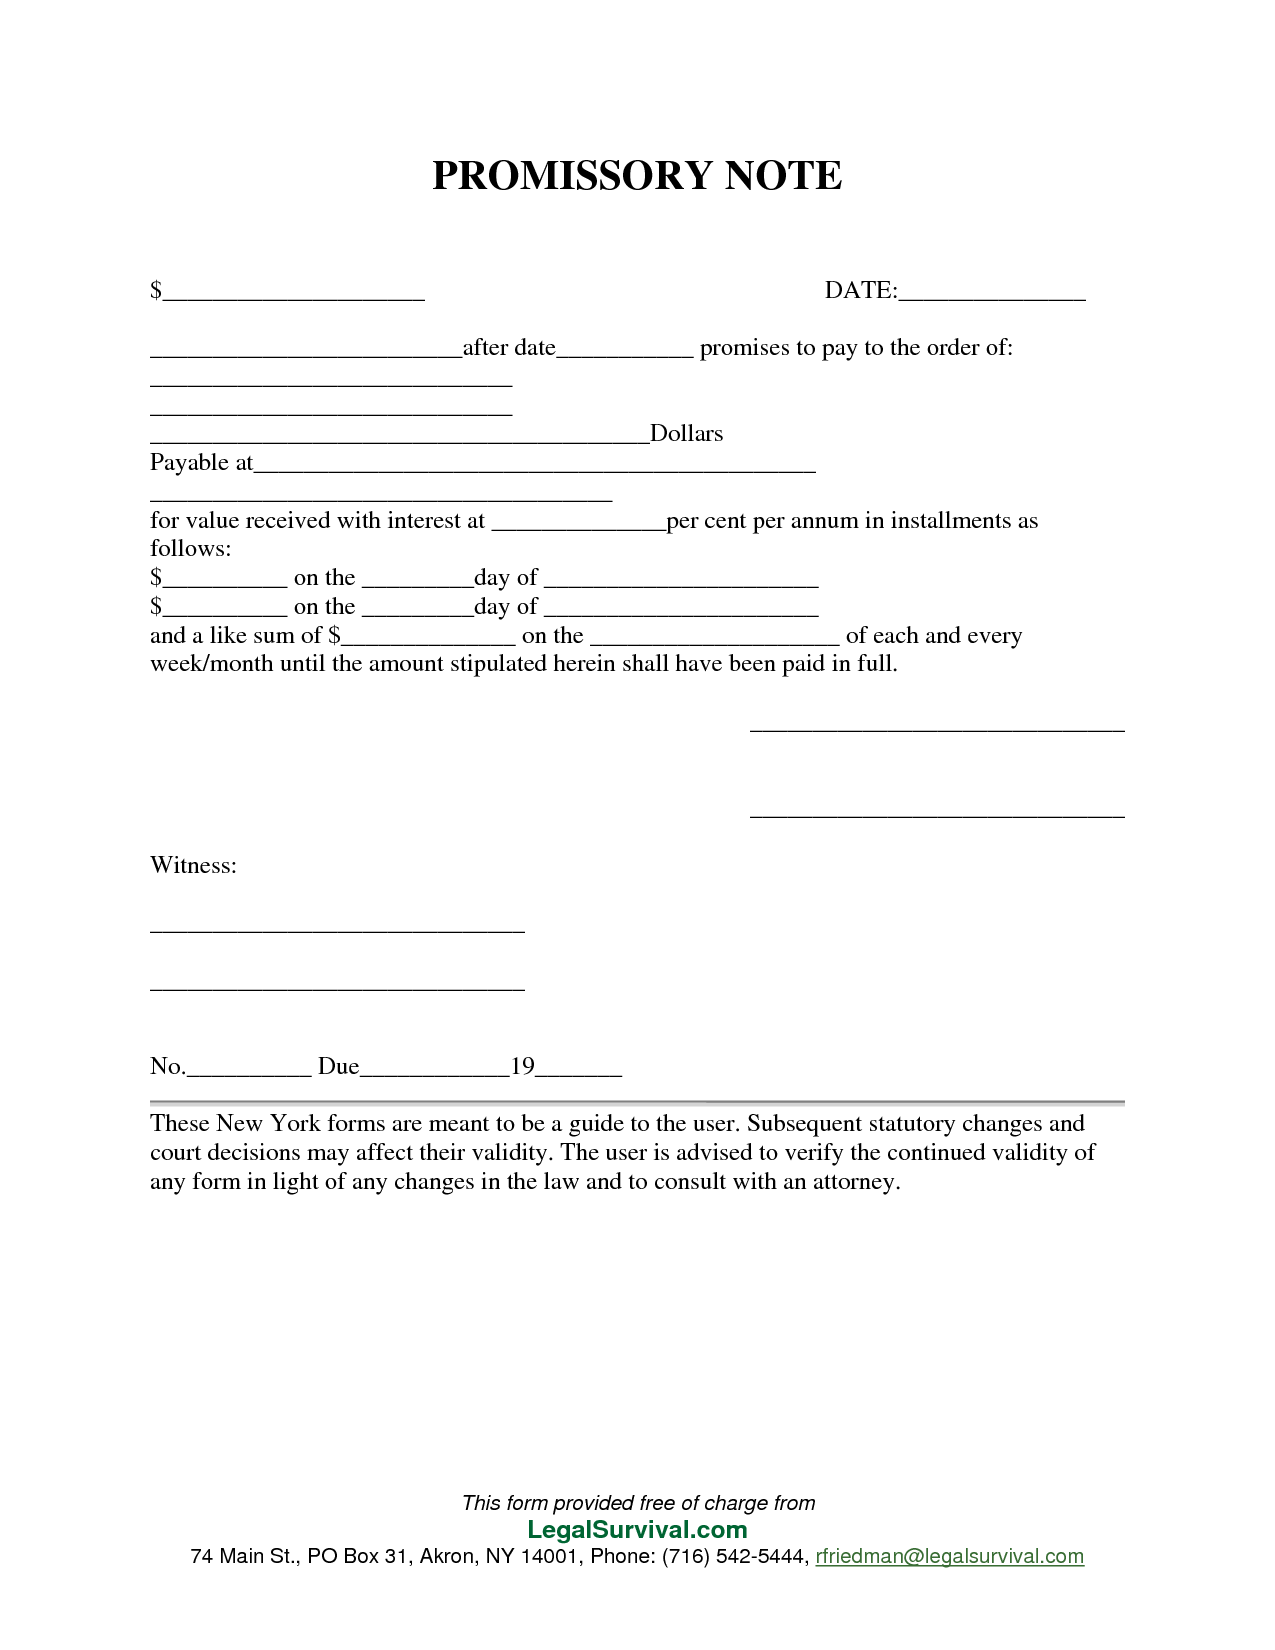 promissory note template canada - permalink to free promissory note template products